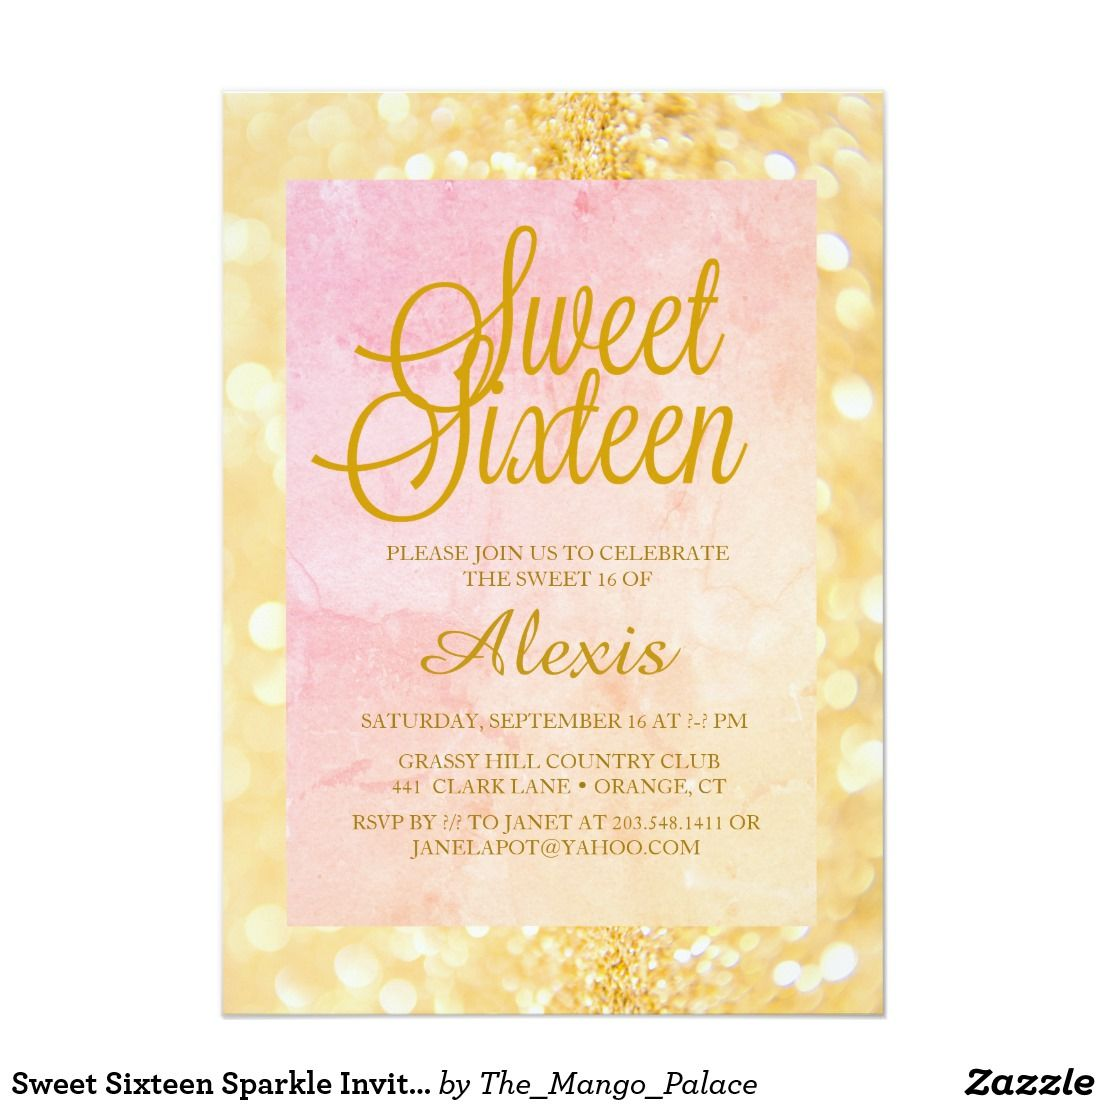 sweet sixteen sparkle invitation in 2018 sweet 16 pinterest